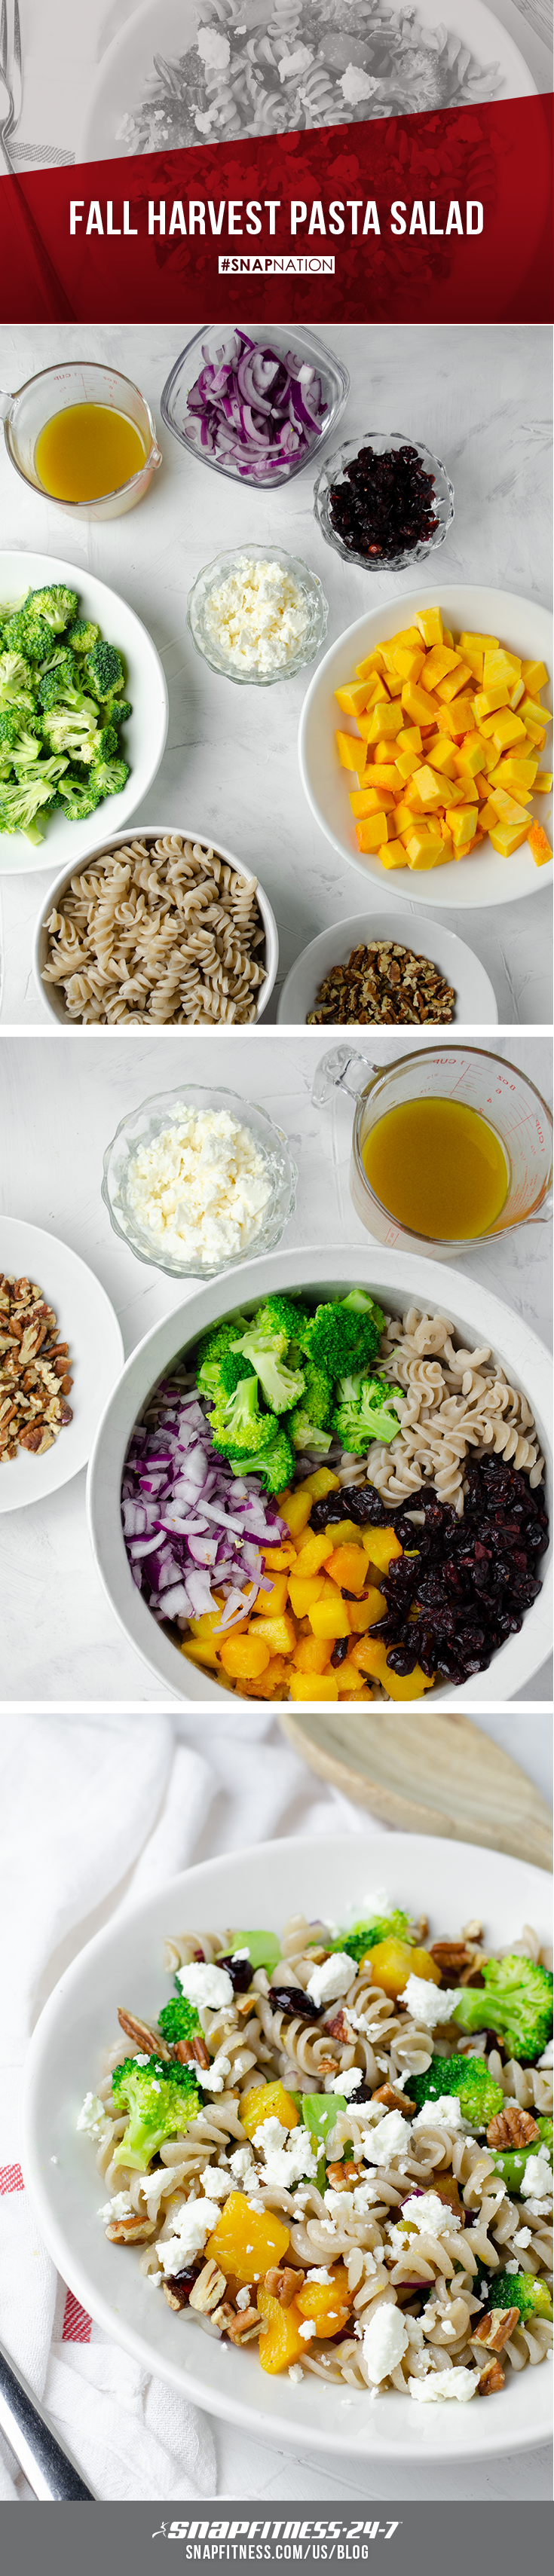 """For the Salad: 2 cups gluten free rotini pasta, uncooked 2 cups butternut squash, cut into 1⁄2"""" cubes 2 cups raw broccoli florets 2⁄3 cup red onion, peeled and chopped 2⁄3 cup dried cranberries 1⁄3 cup chopped pecans 4 oz feta cheese, crumbled 2-3 tsp olive oil 1⁄2 tsp salt  For the Dressing: 2 Tbsp olive oil 2 Tbsp maple syrup 1 Tbsp Apple Cider Vinegar 1 tsp dijon mustard Pinch of salt, or more to taste 1/8 tsp freshly cracked pepper"""